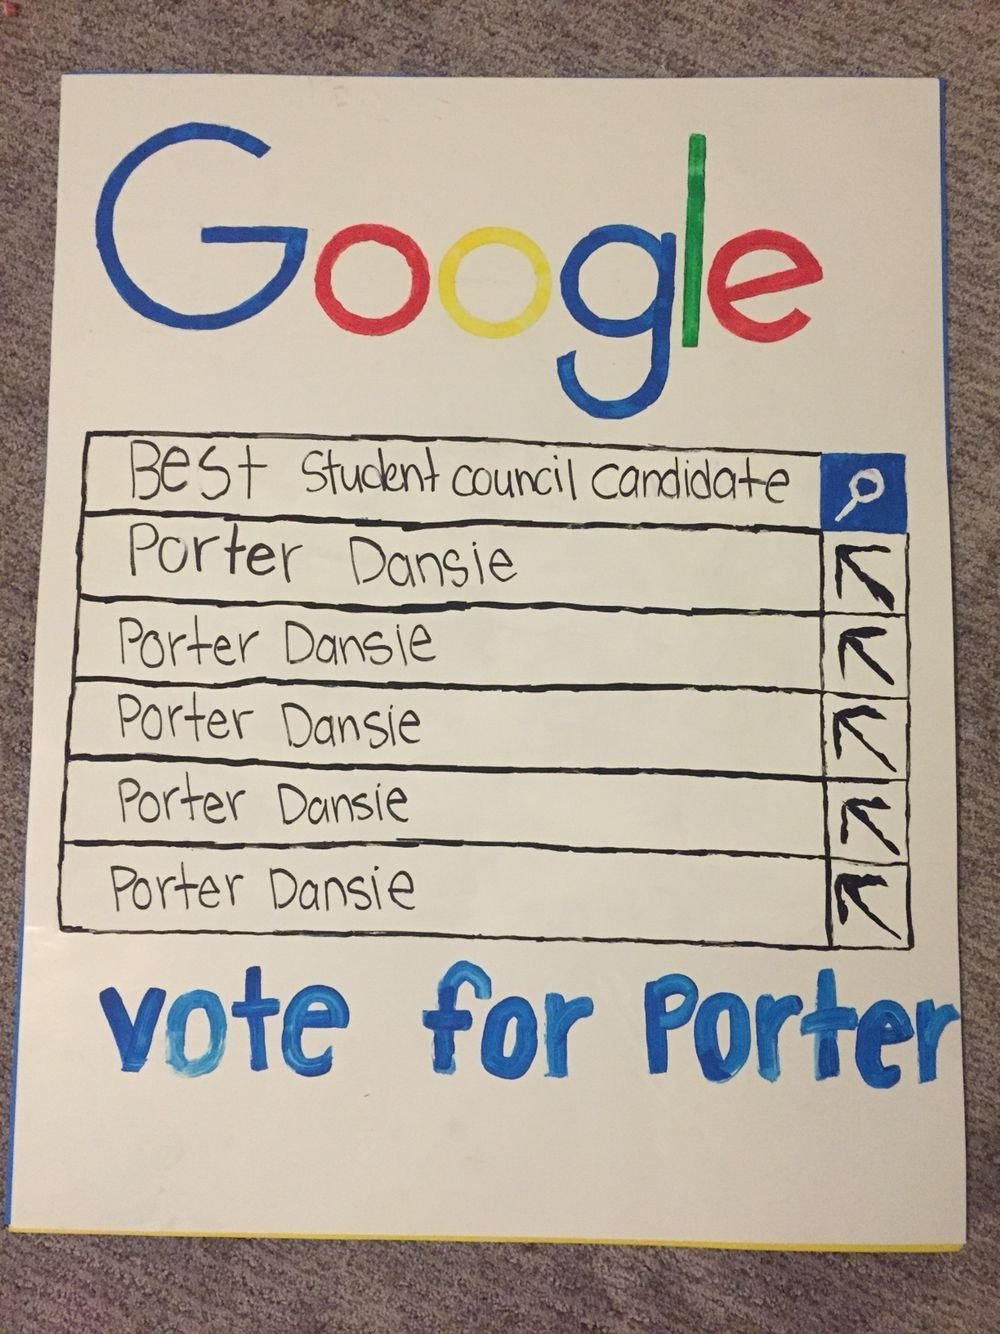 10 Awesome Student Council Campaign Poster Ideas student council poster google poster student council elections 7 2021